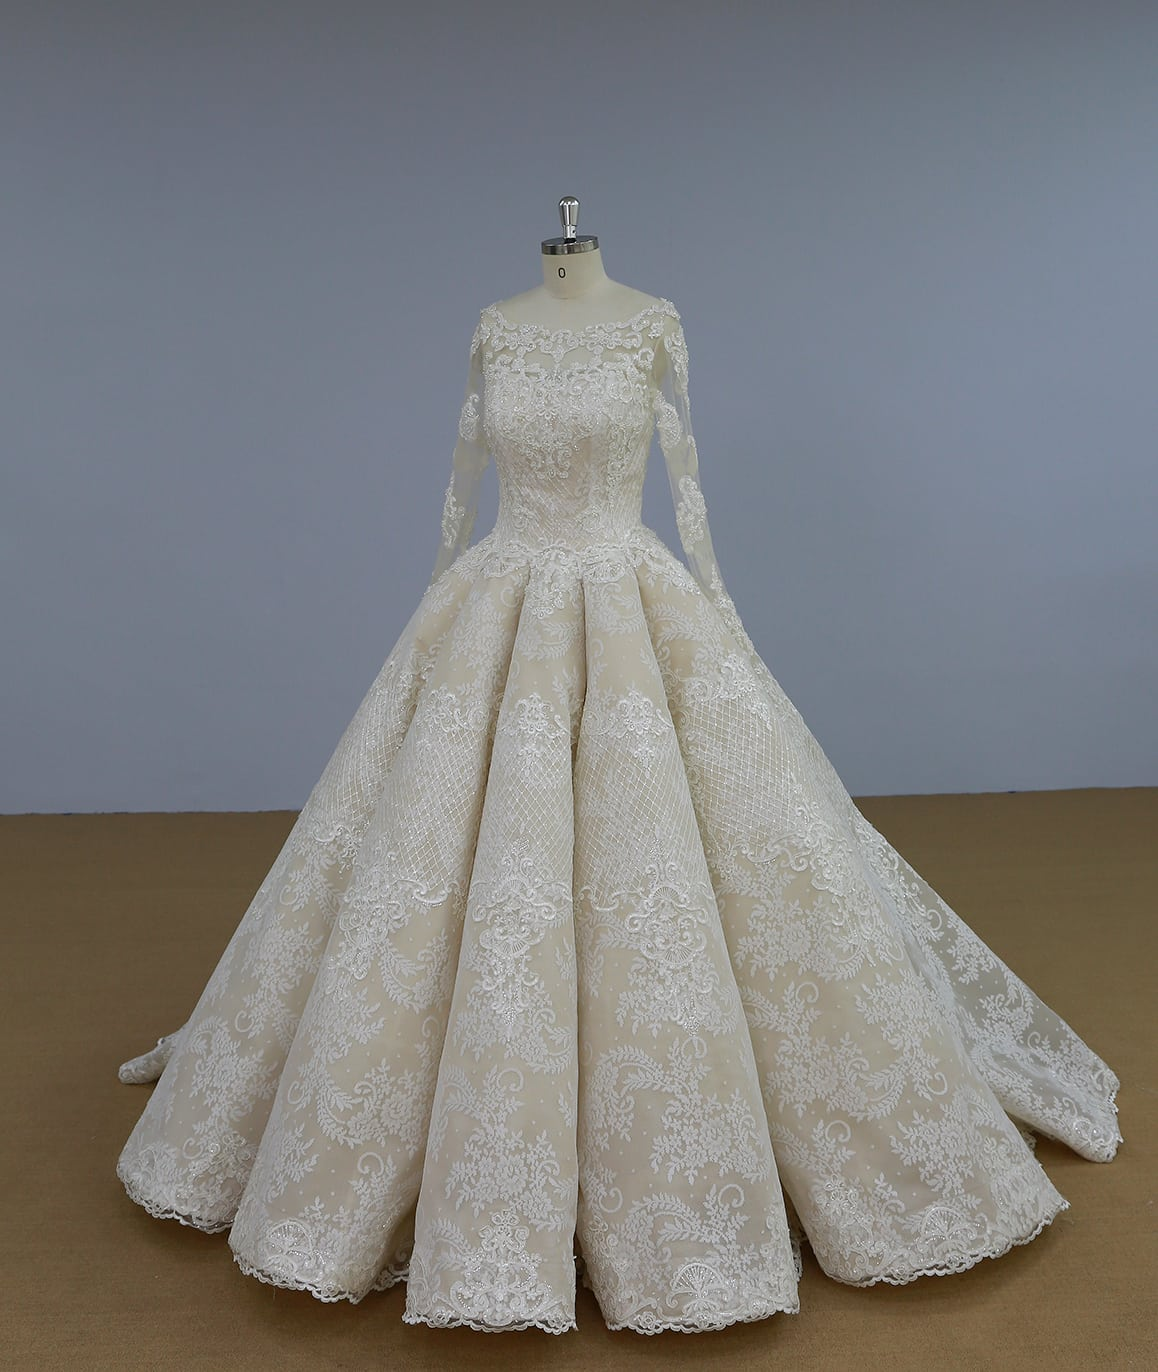 Long Sleeve Embroidered Ball Gown Wedding Dress From Darius Customs